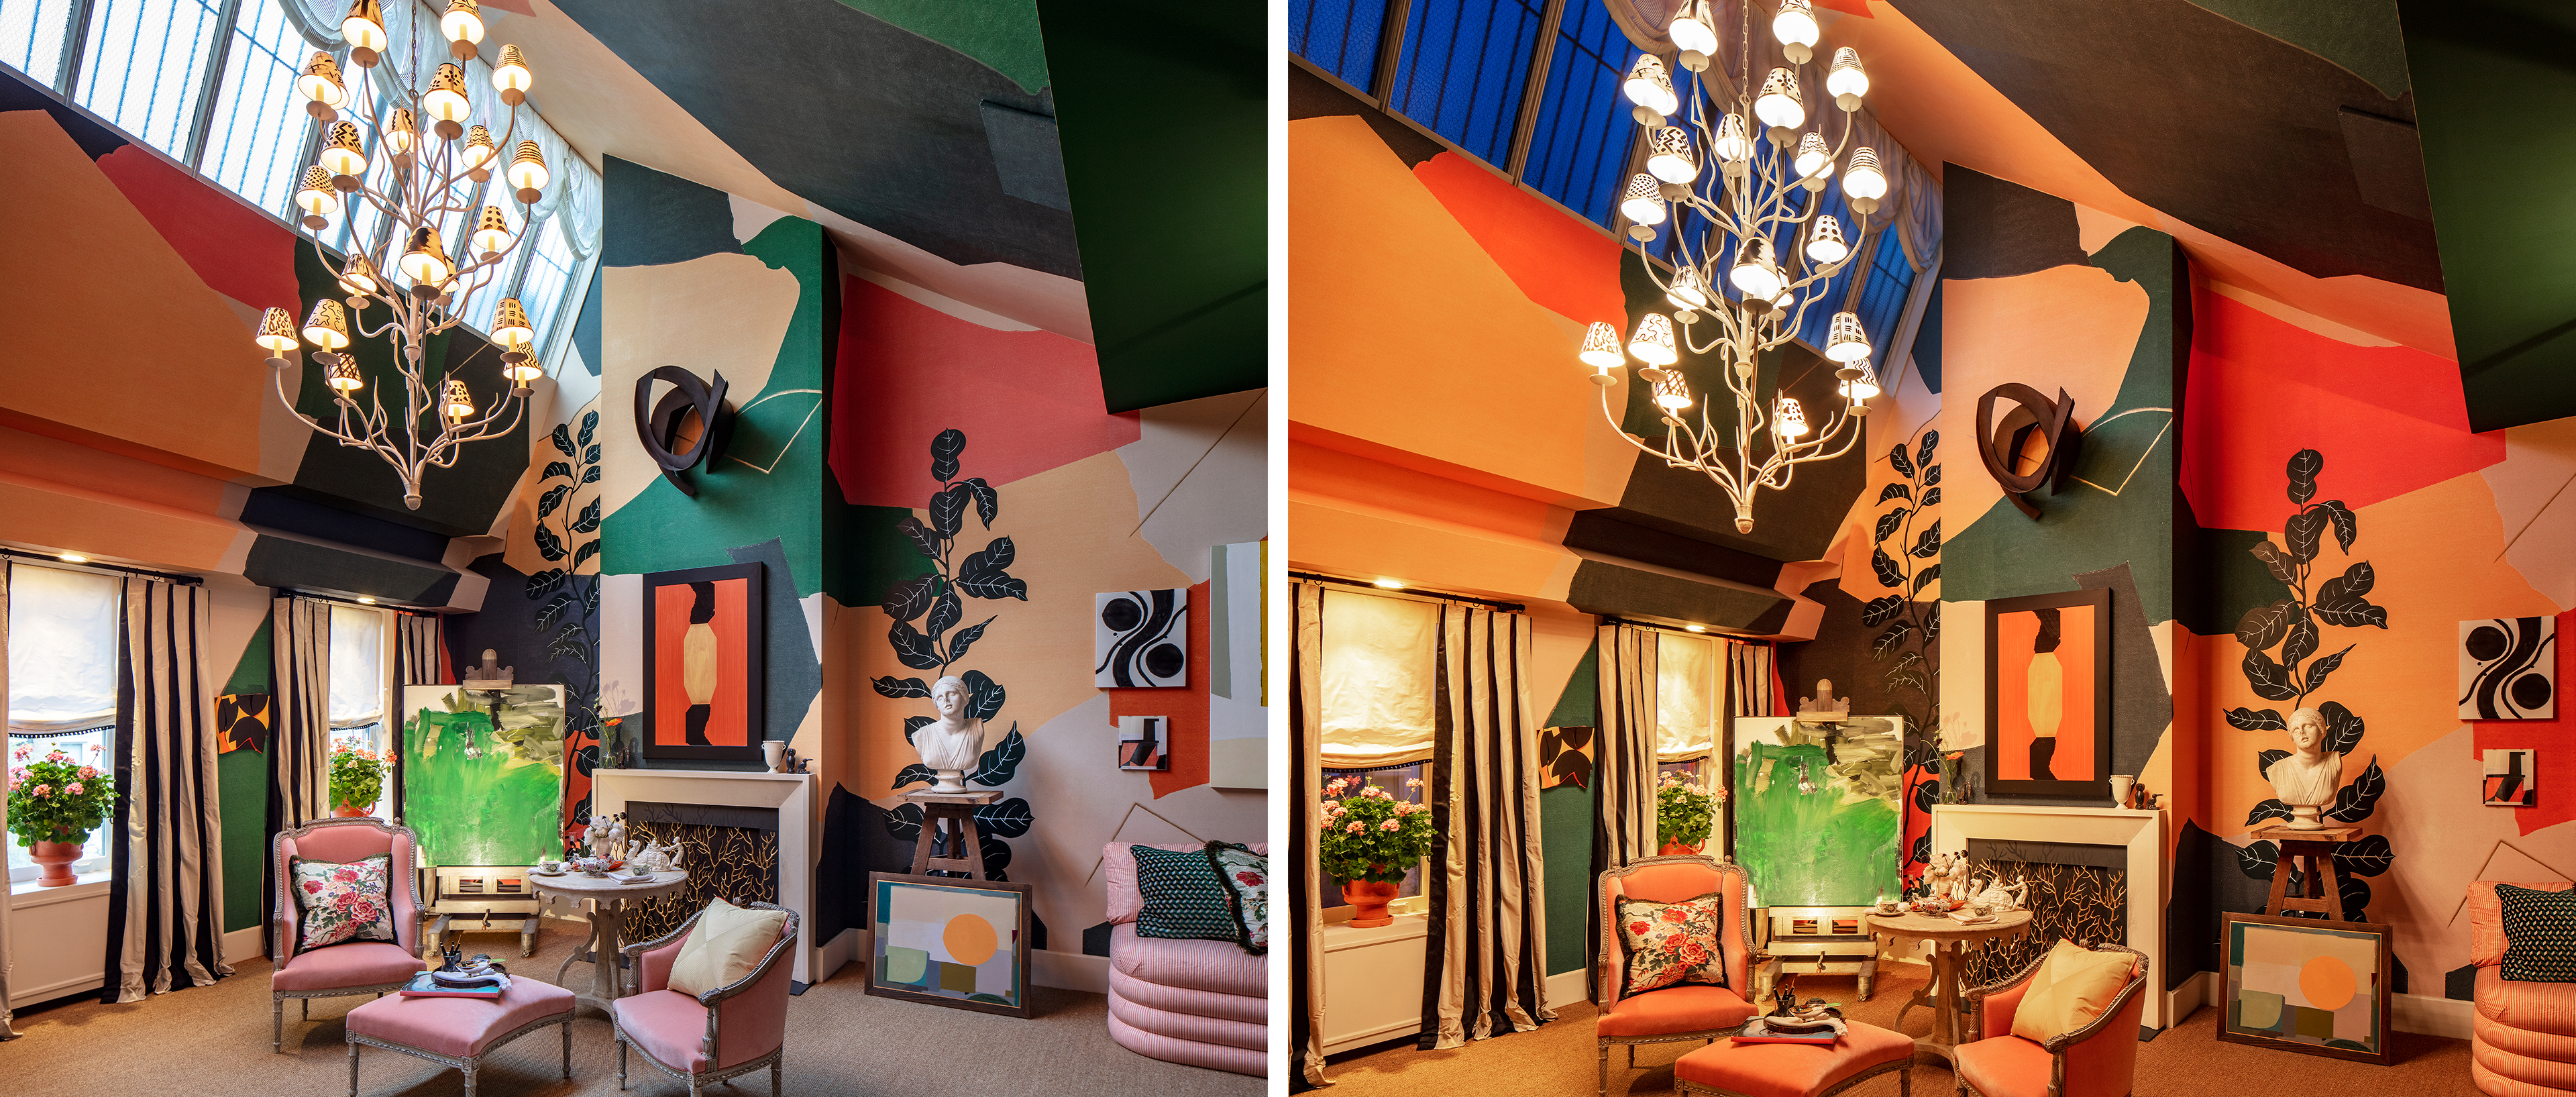 Young Huh's design for Kips Bay Decorator Show House Living Room at day and night